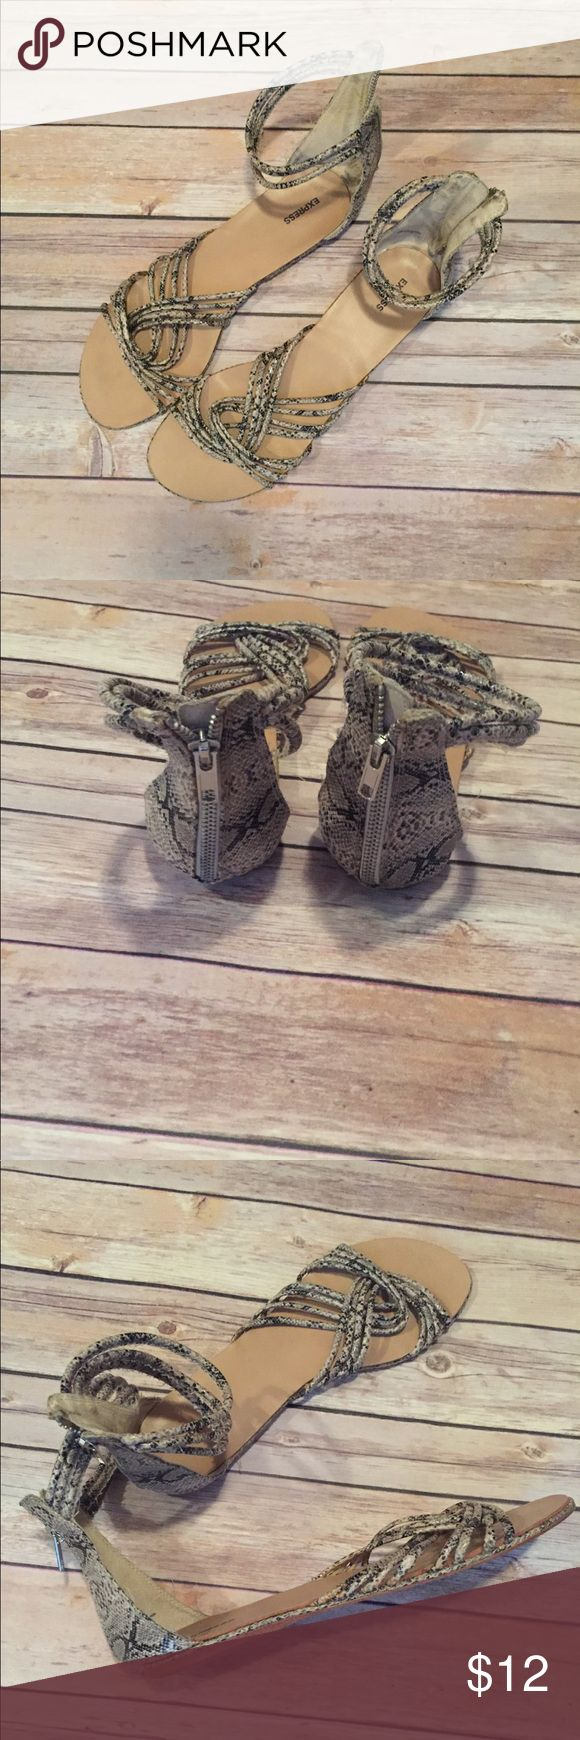 Express Gladiator Sandals SZ 10 Express Gladiator Sandals. Sz 10 Snakeskin Print. Thin Tripple Ankle Strap. Silver Zip Up Back. Super Cute!!! Express Shoes Sandals